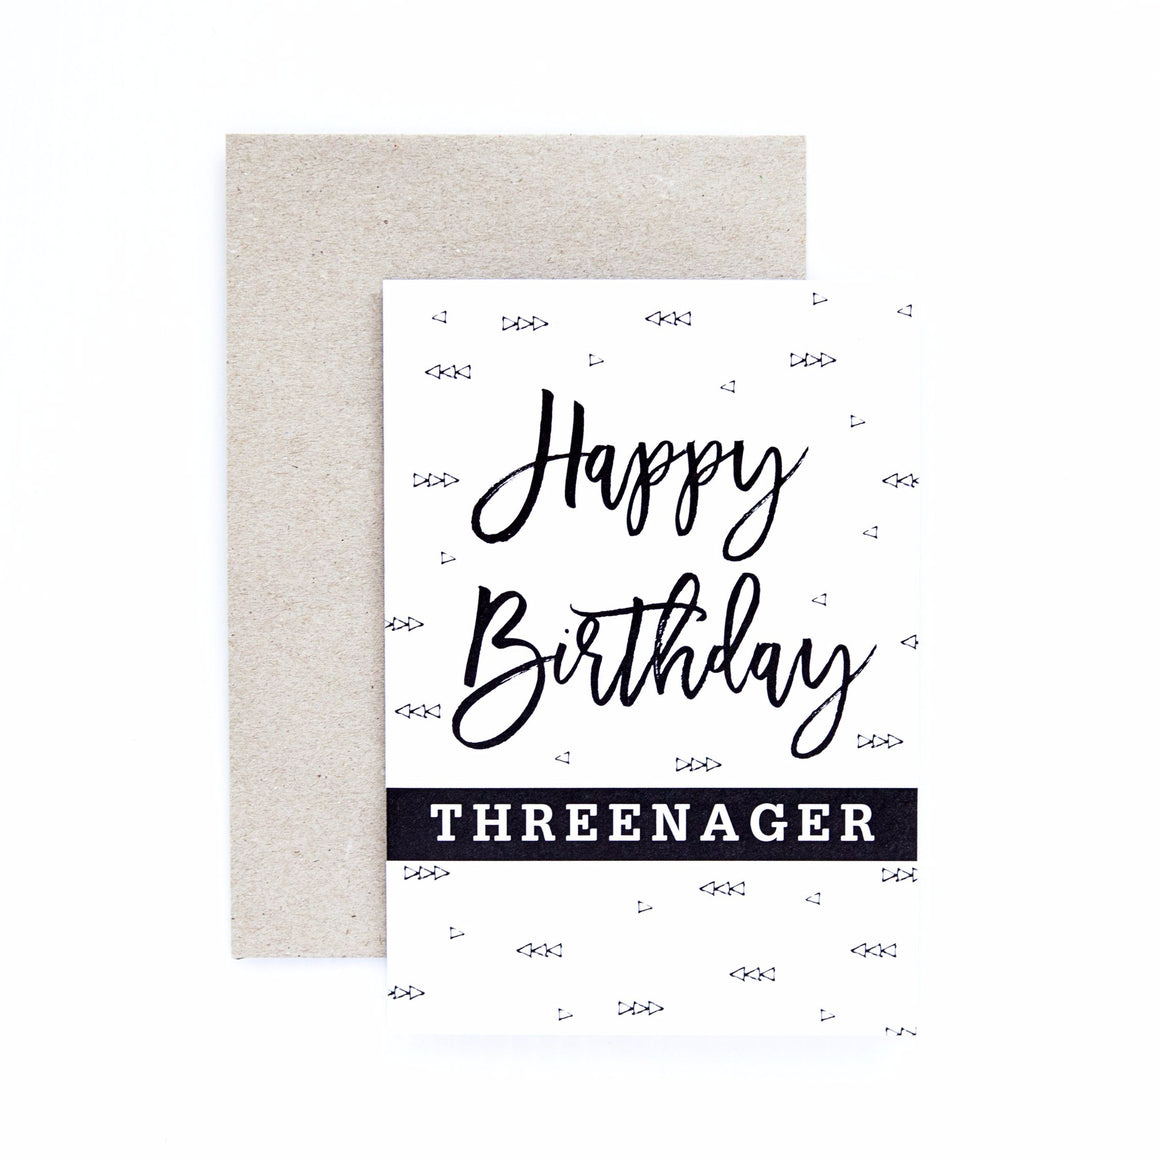 Seriously 'Happy Birthday Threenager' Greeting Card